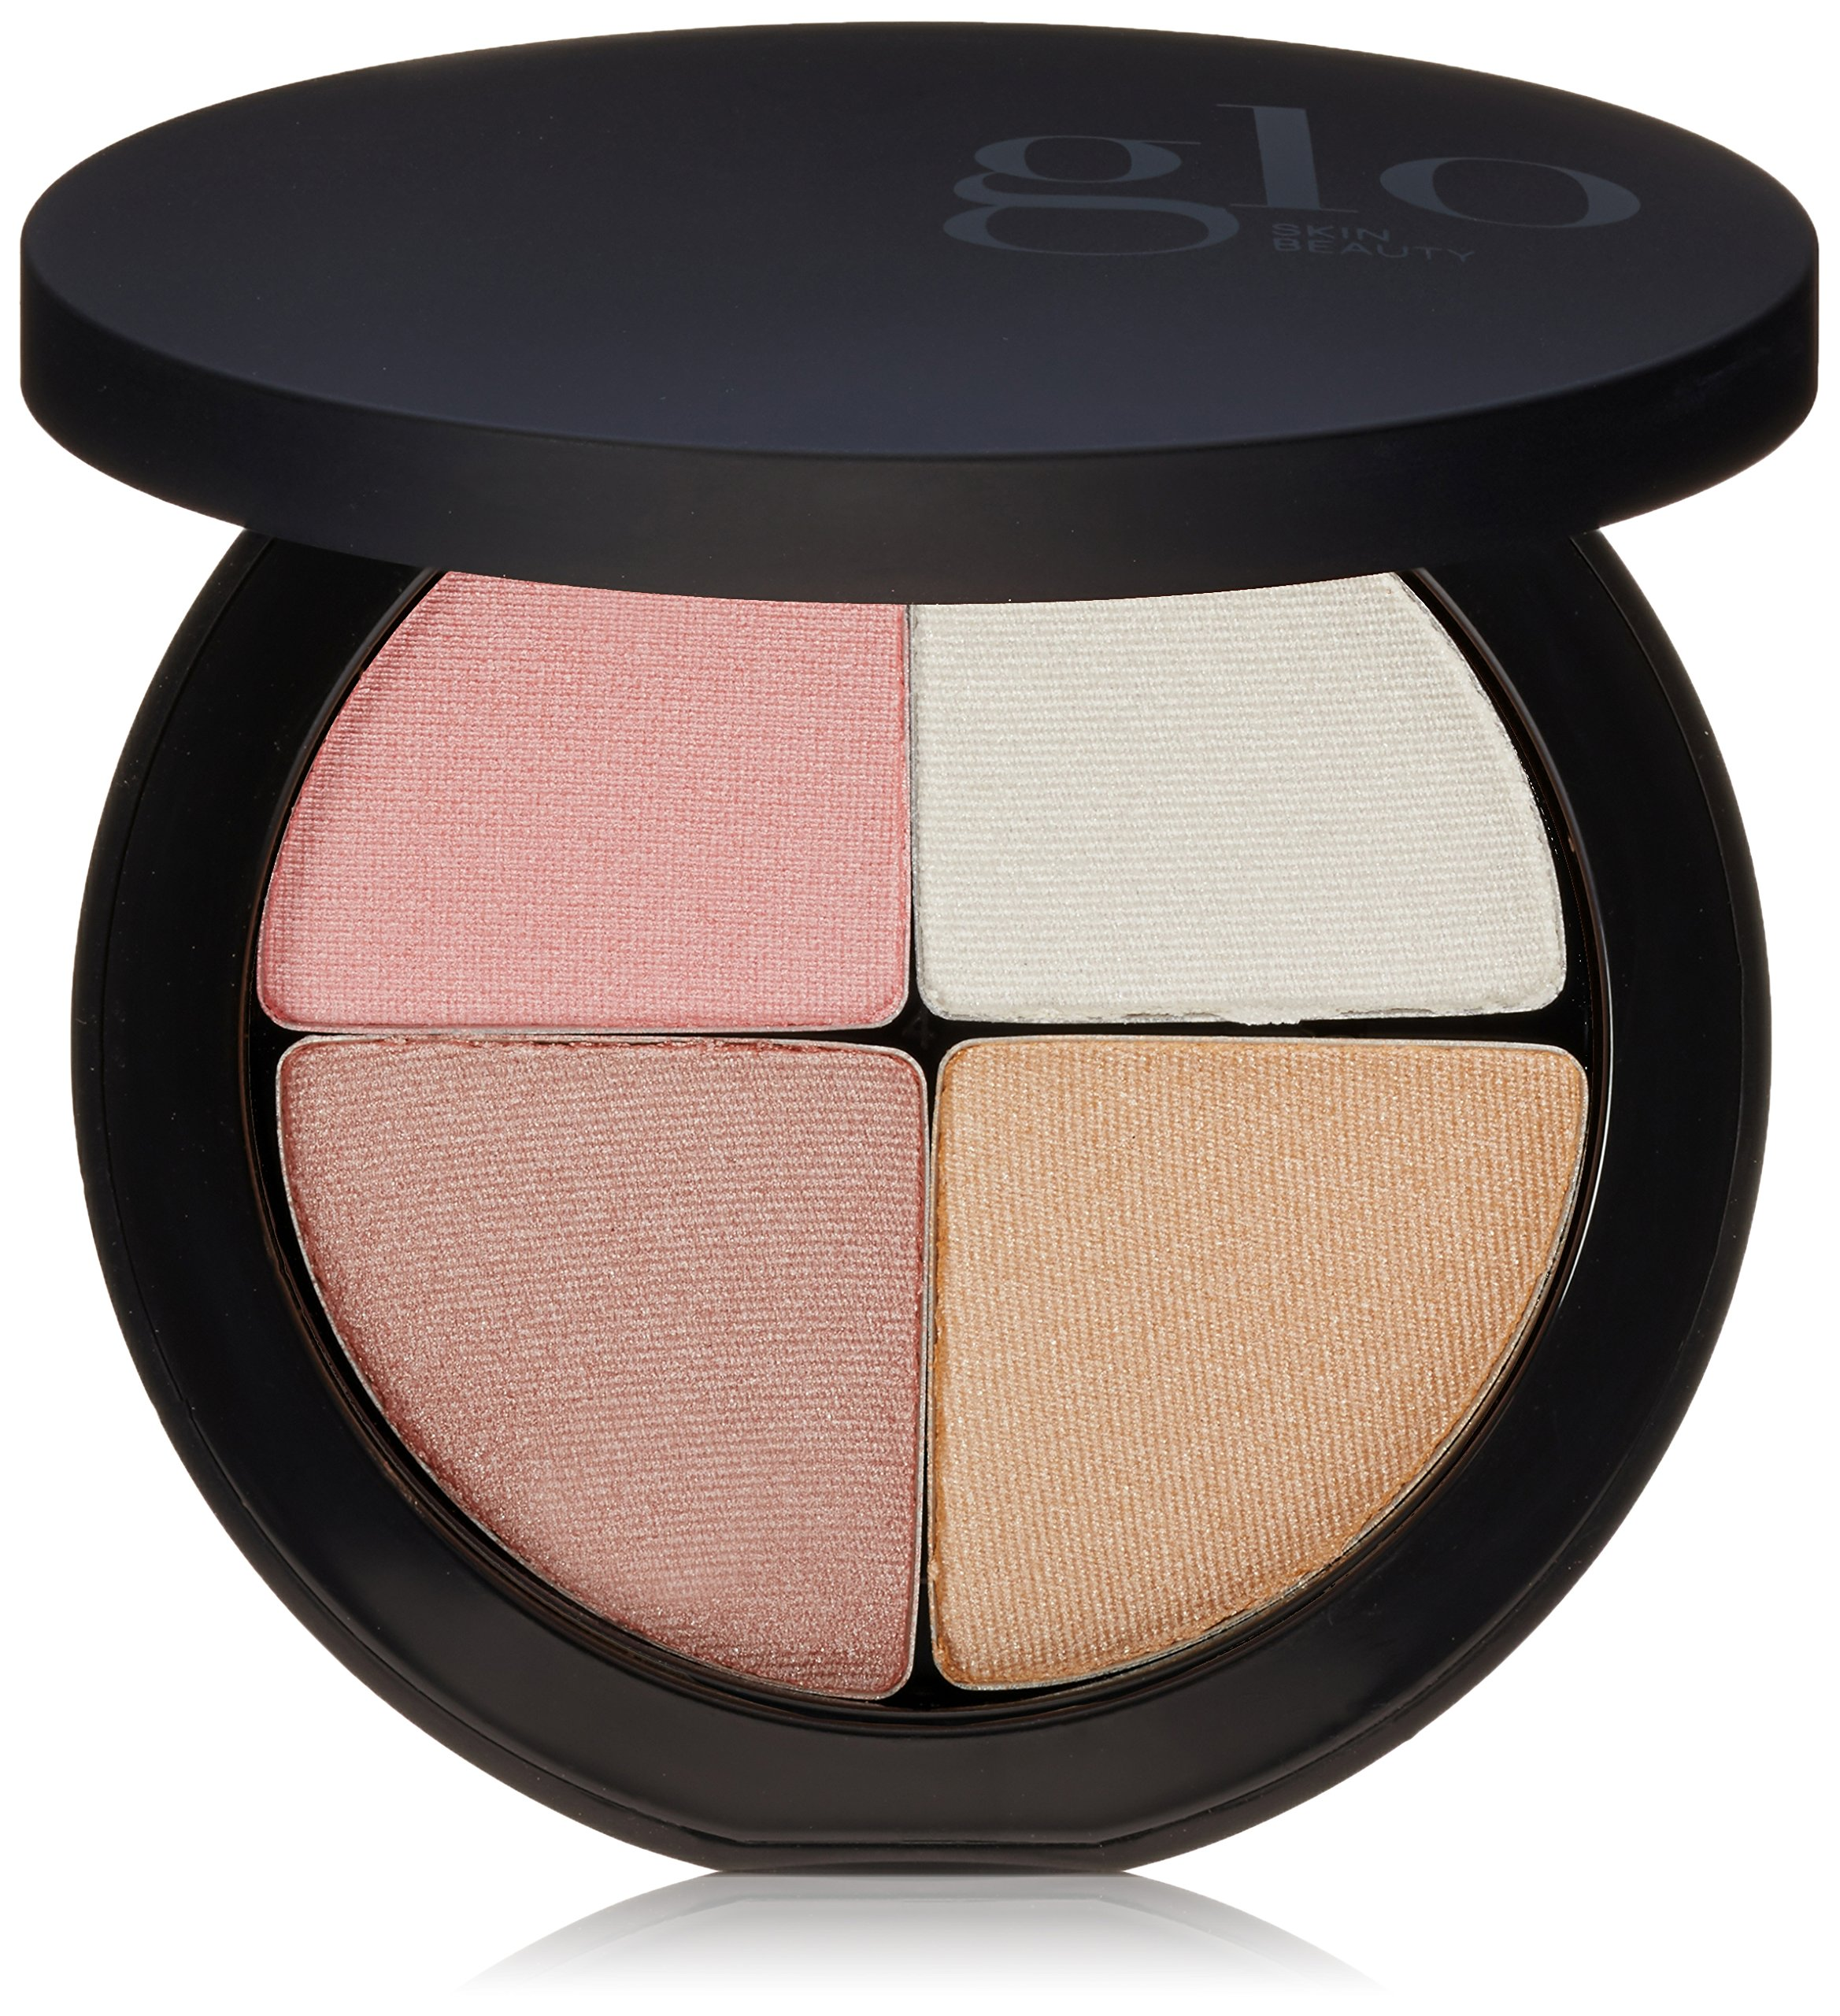 Glo Skin Beauty Shimmer Brick in Gleam   Face Highlighter Palette Set in Pinks   4 Colors, 2 Shade Options